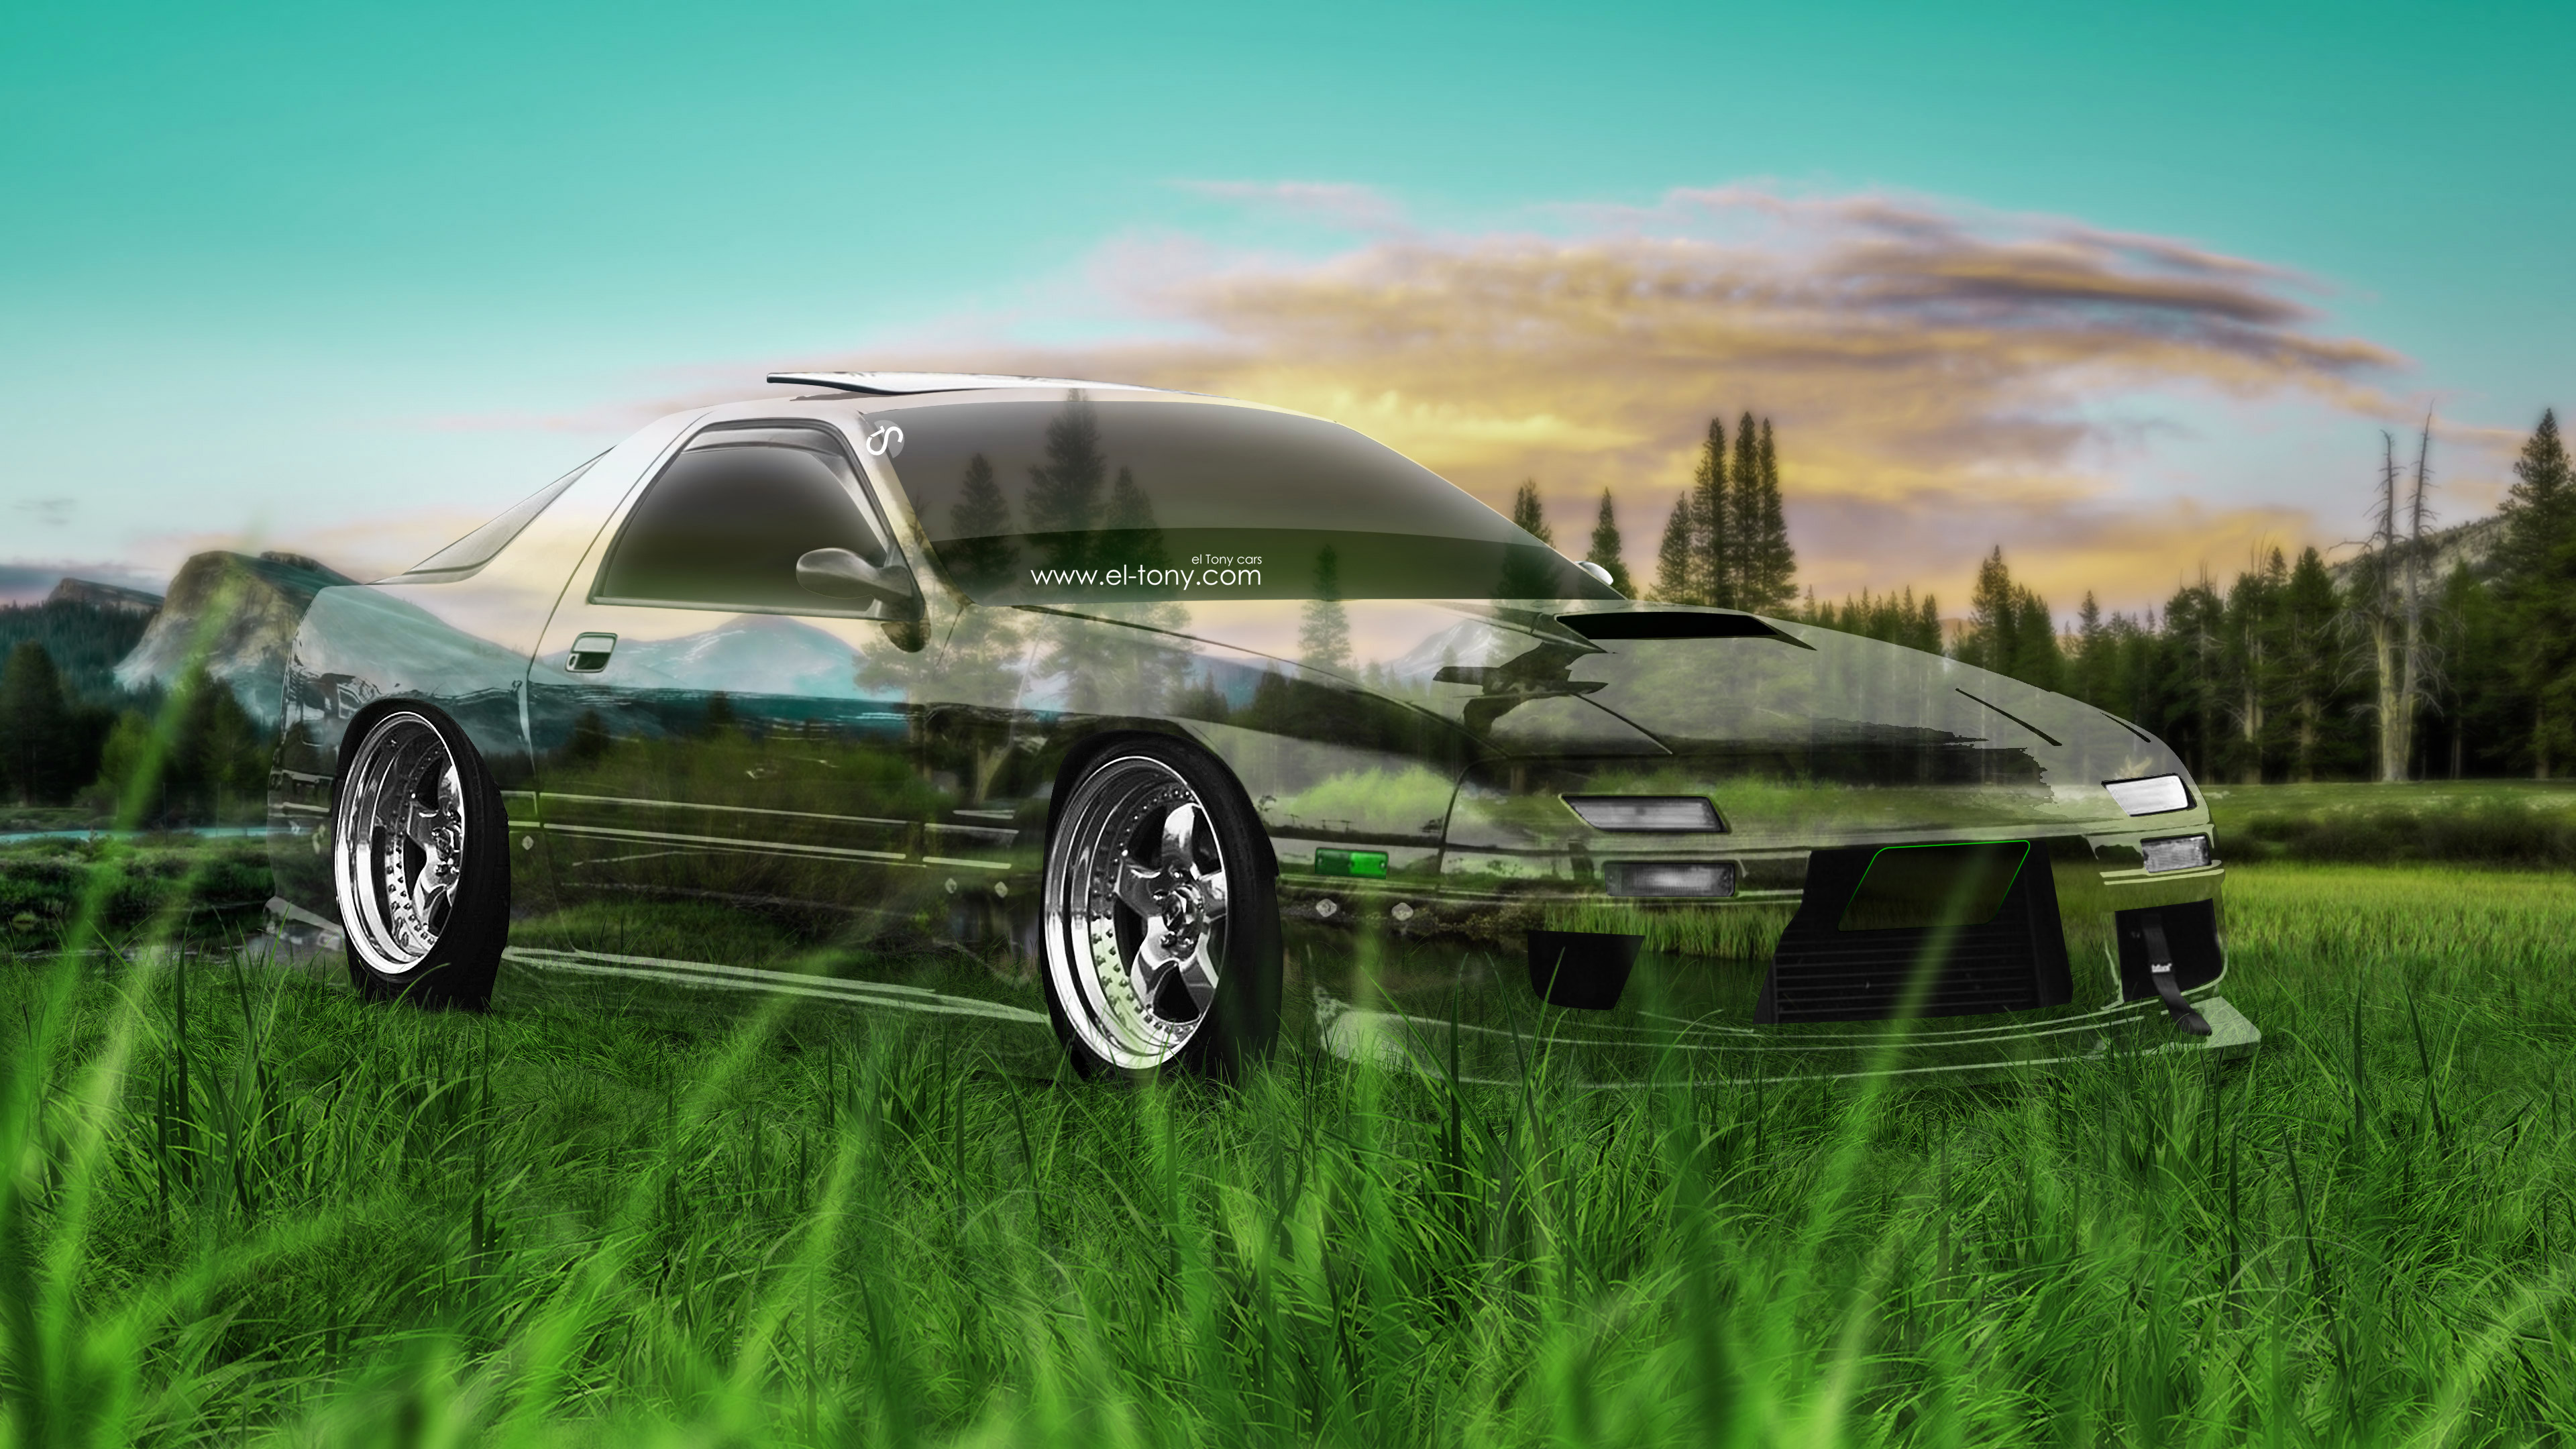 Nissan 180SX JDM Tuning Crystal Nature Car 2015 .